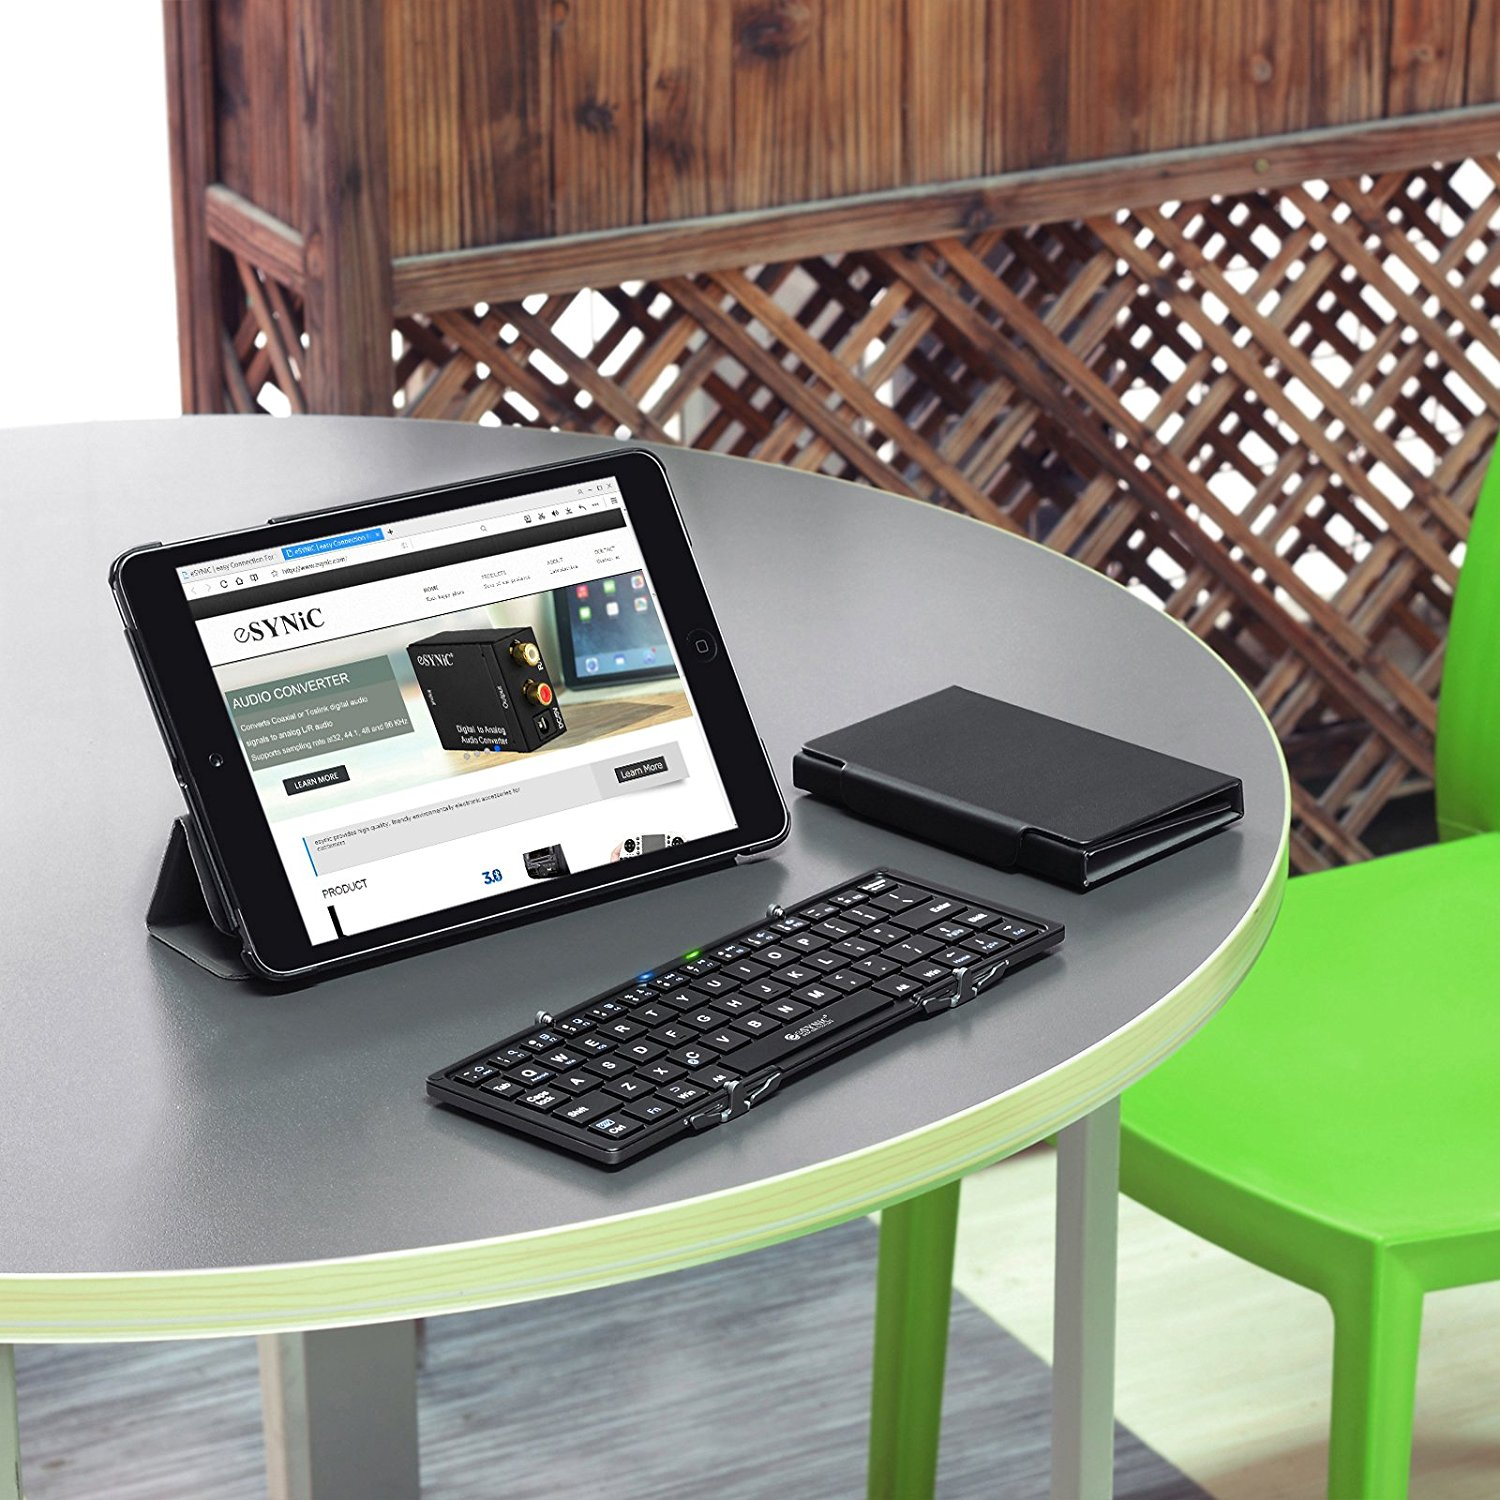 eSynic Foldable Wireless Bluetooth Keyboard